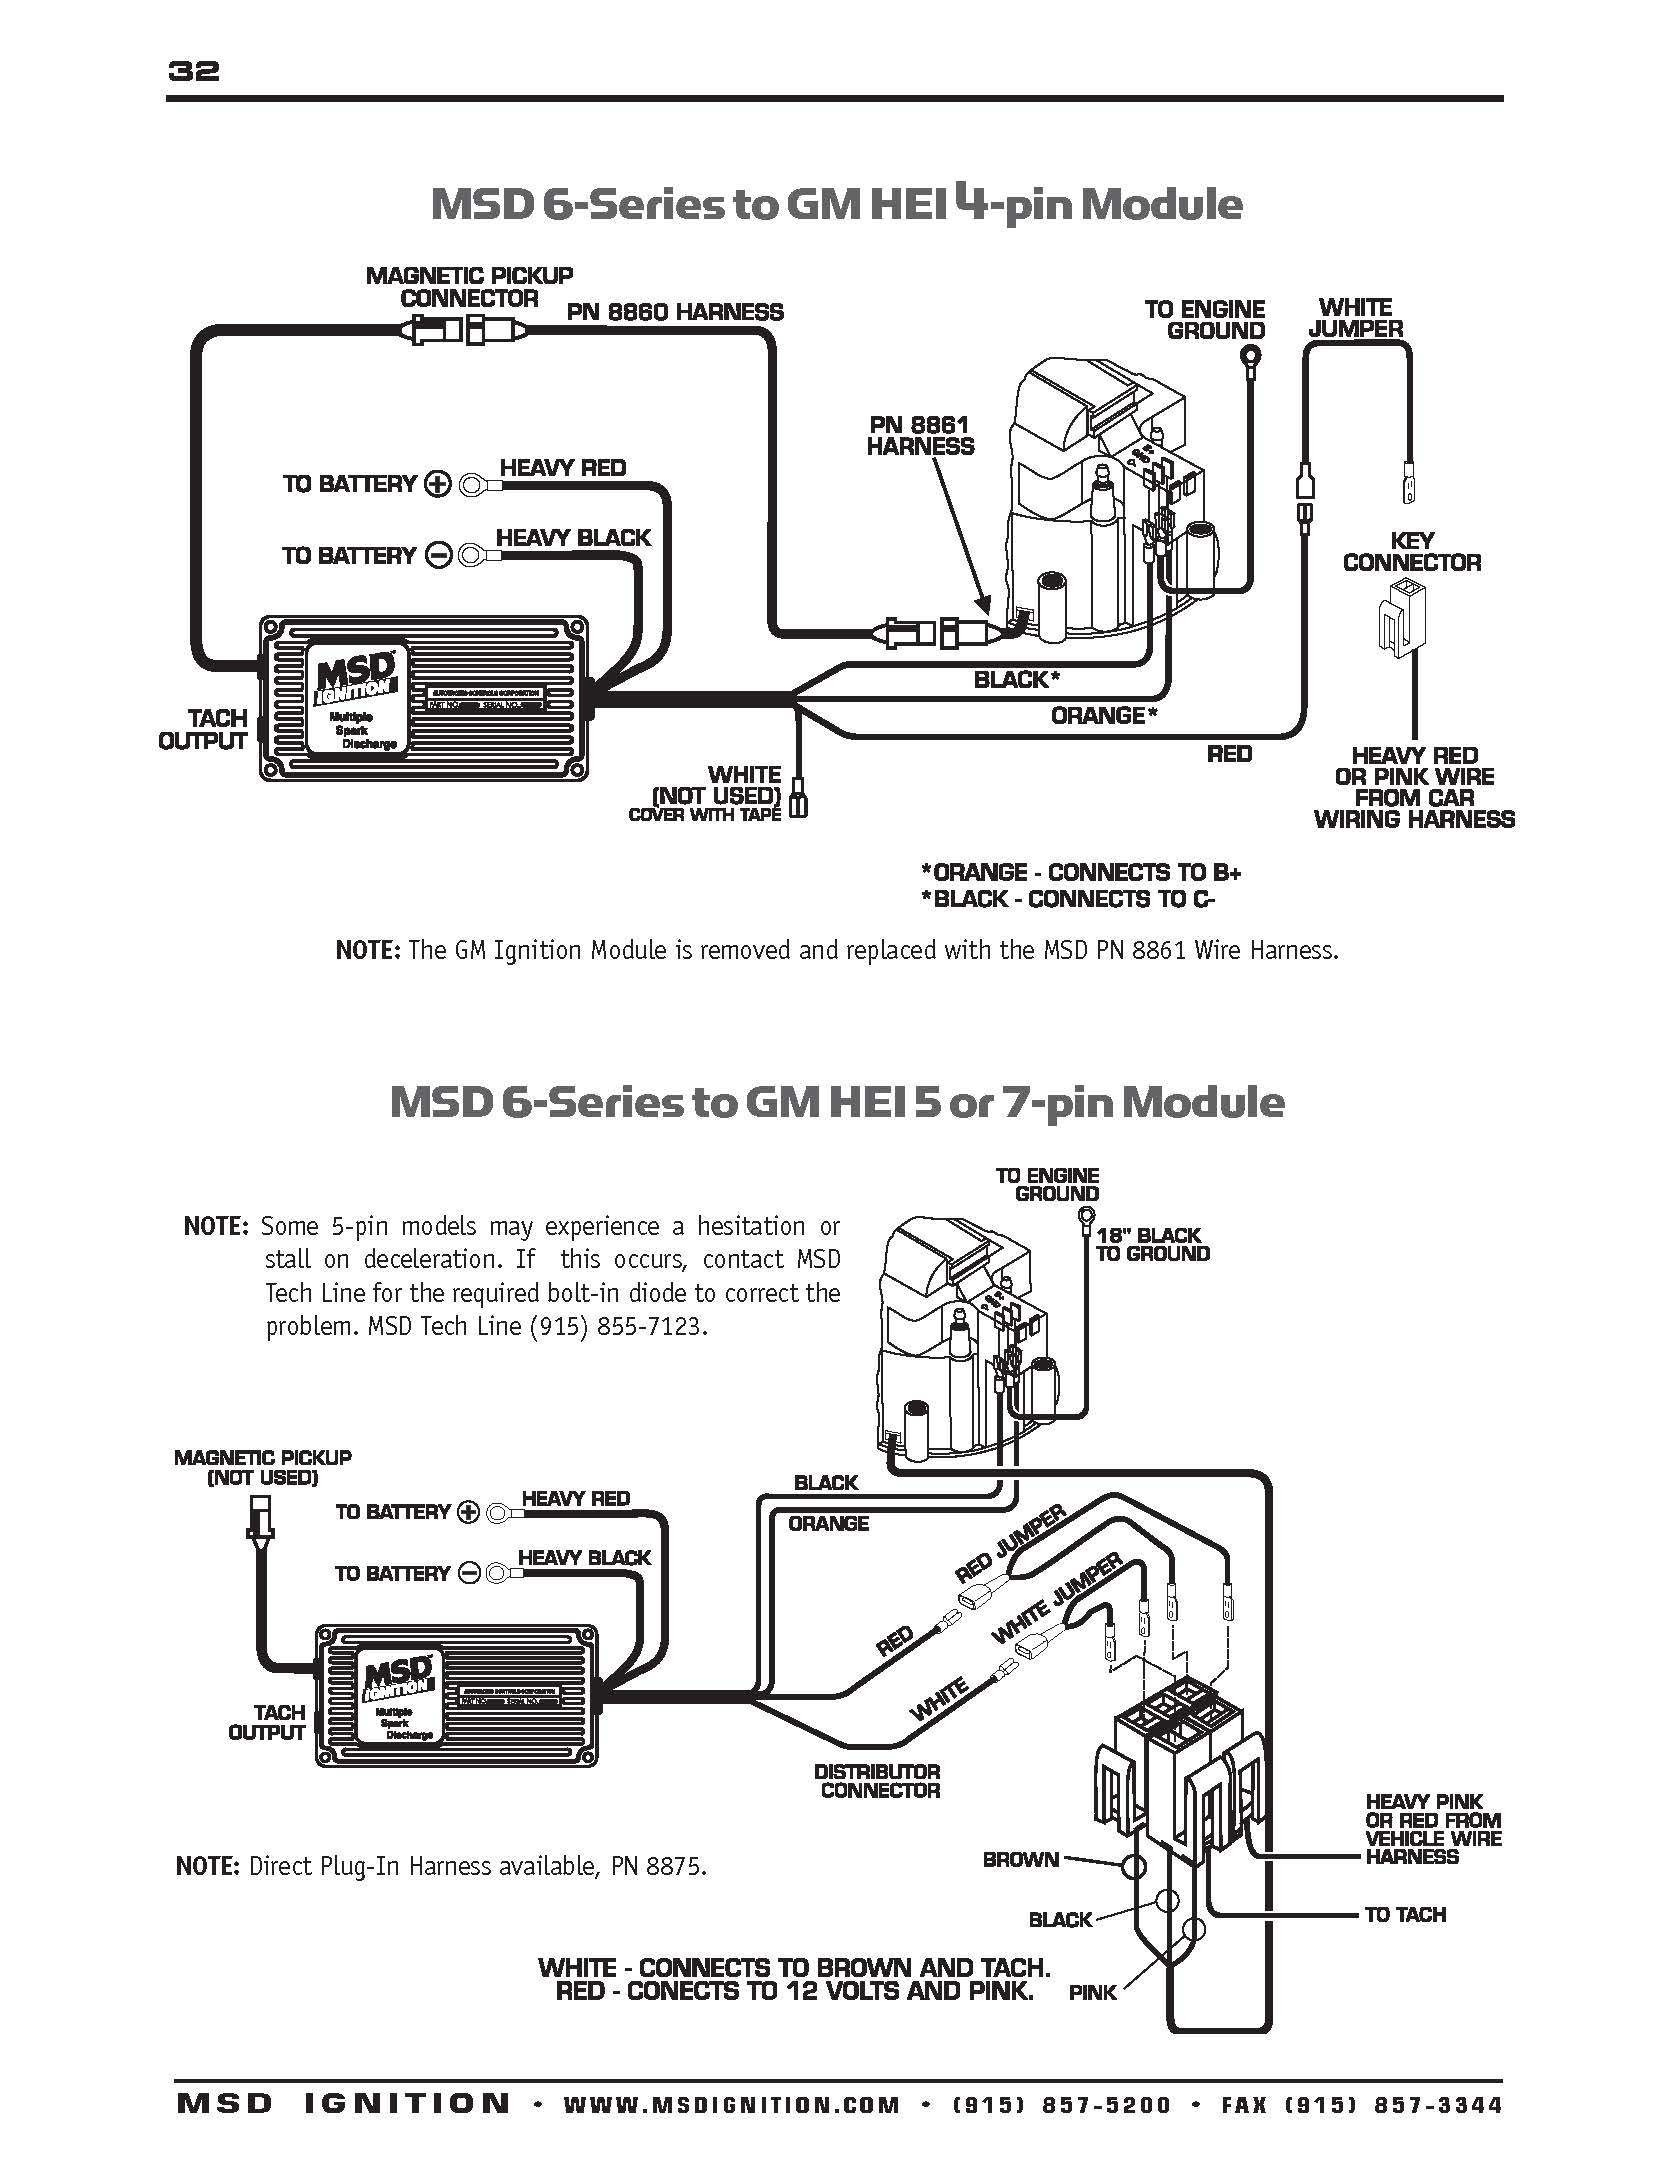 396 chevy with hei distributor wiring diagram chevy hei distributor wiring diagram | free wiring diagram 87 chevy hei distributor wiring diagram